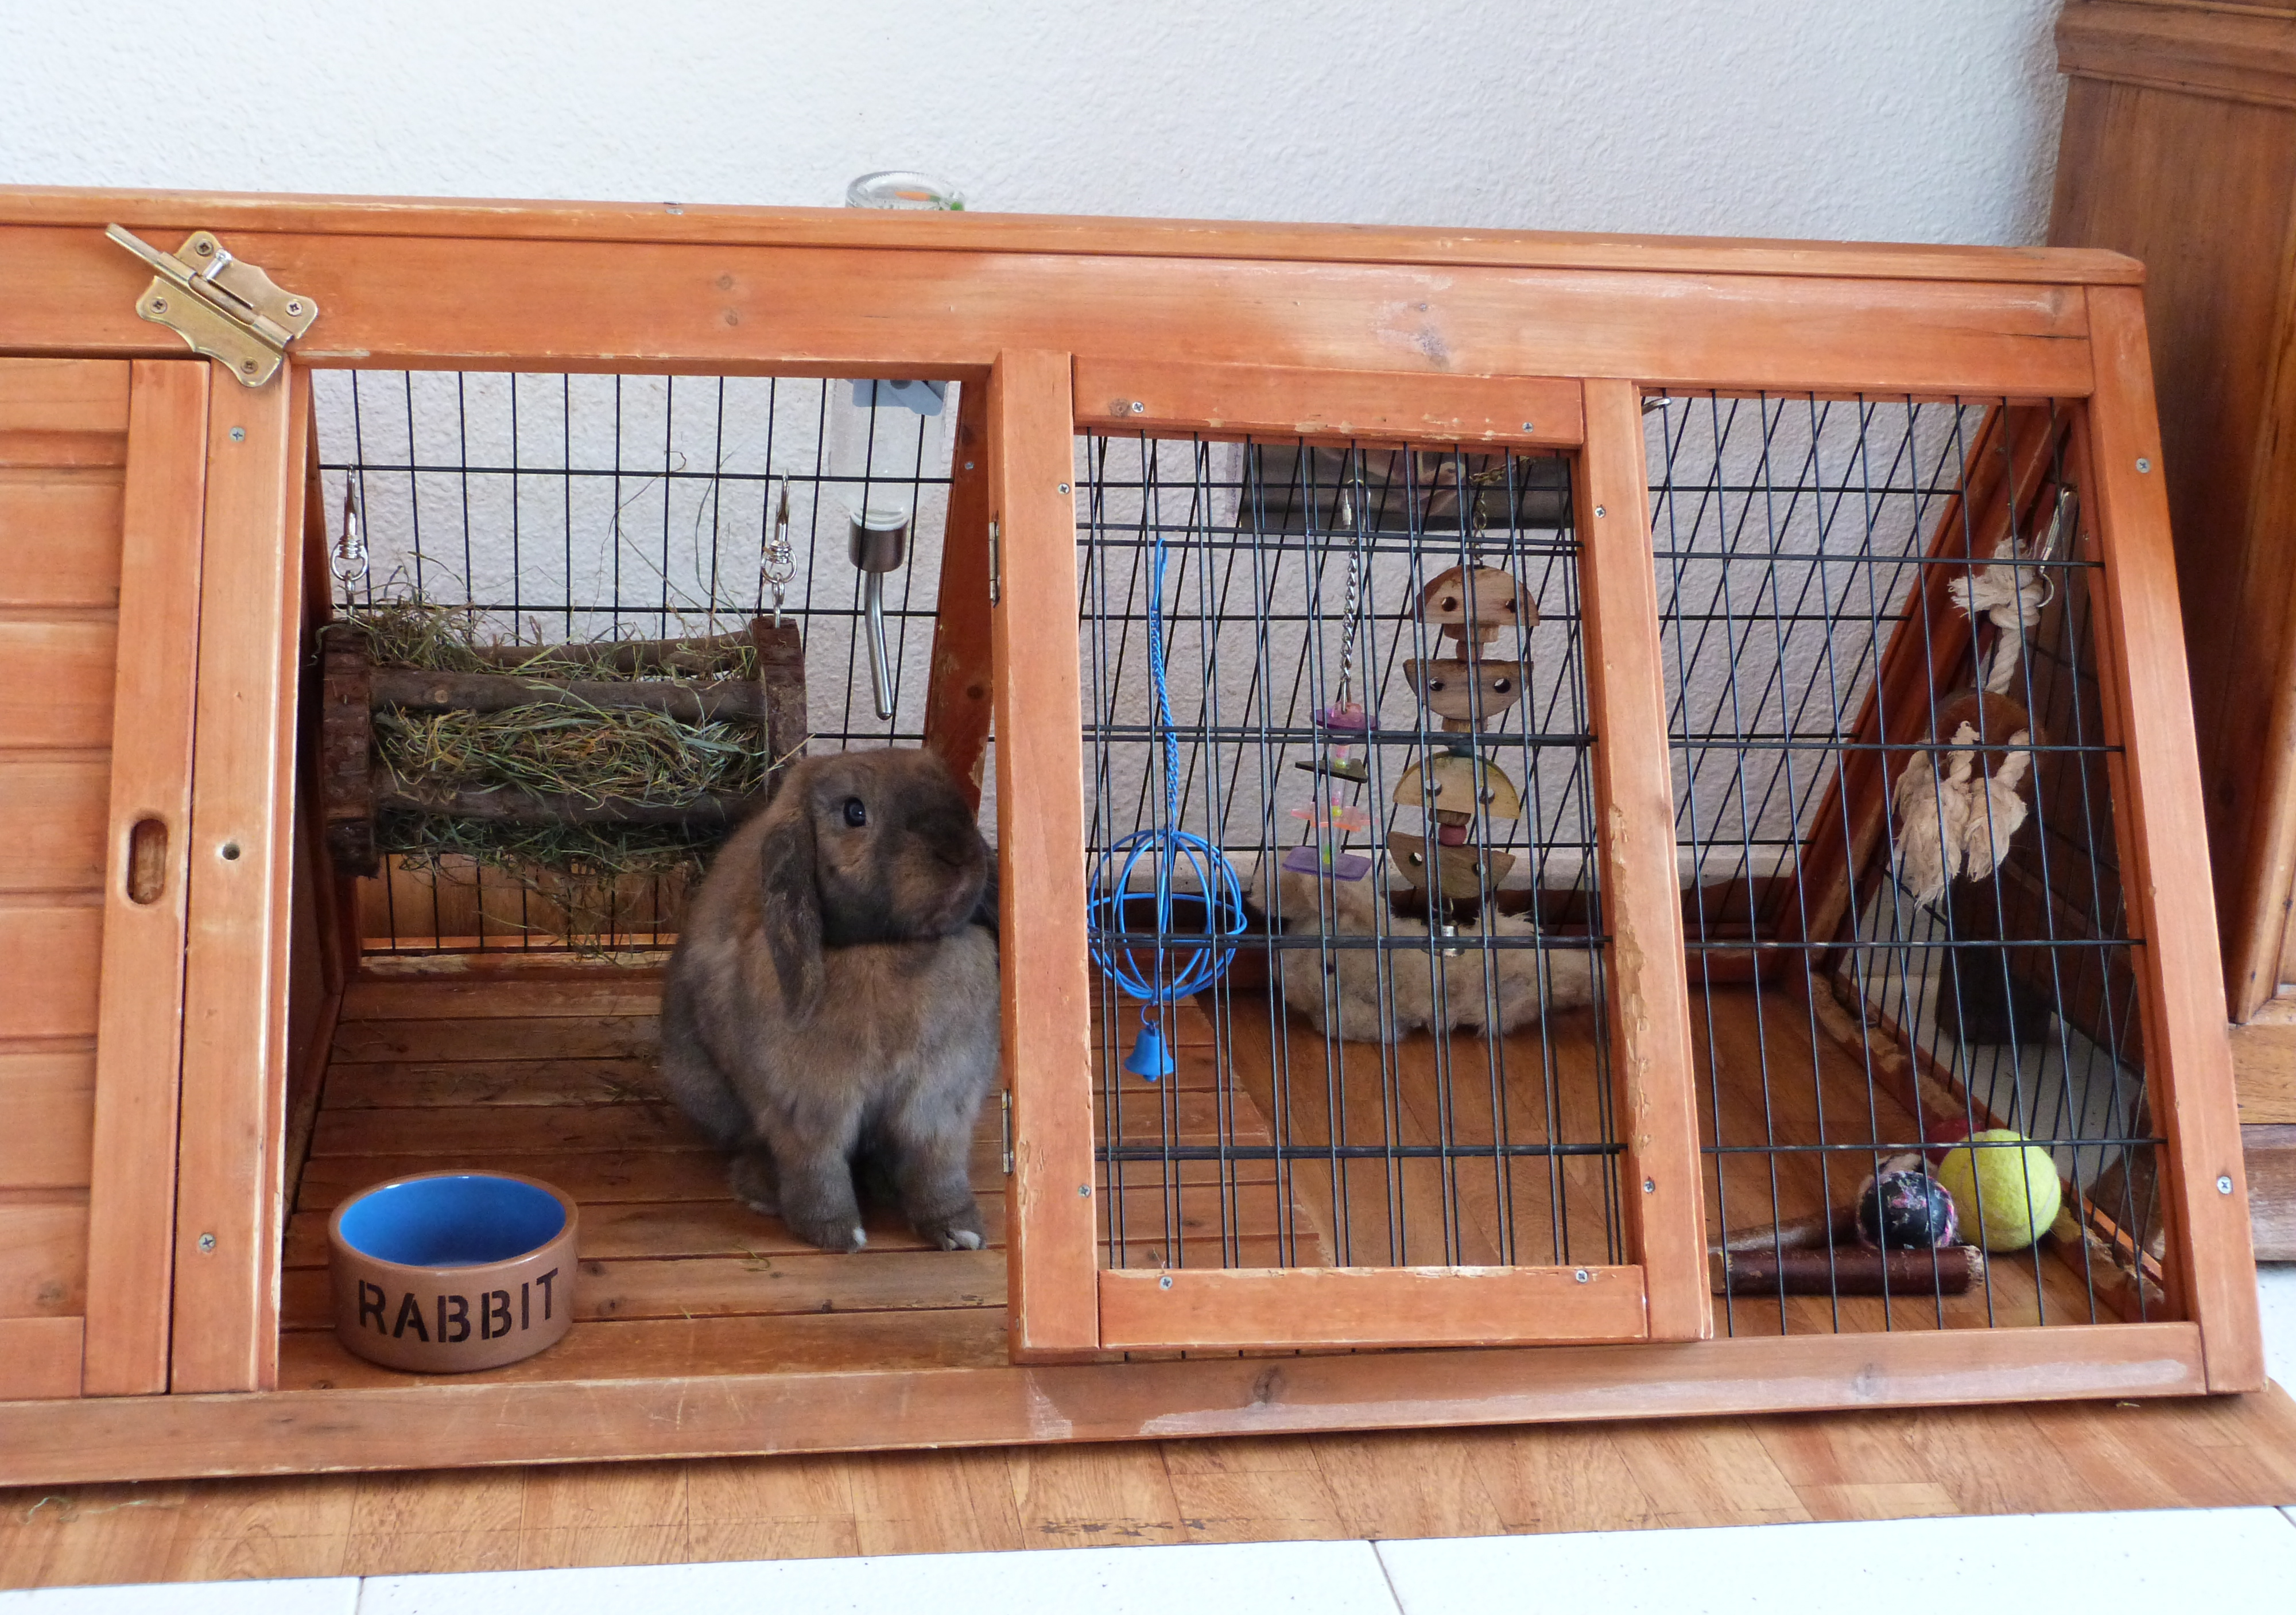 Protecting his home, Accessories, Black, Brown, Bunny, HQ Photo